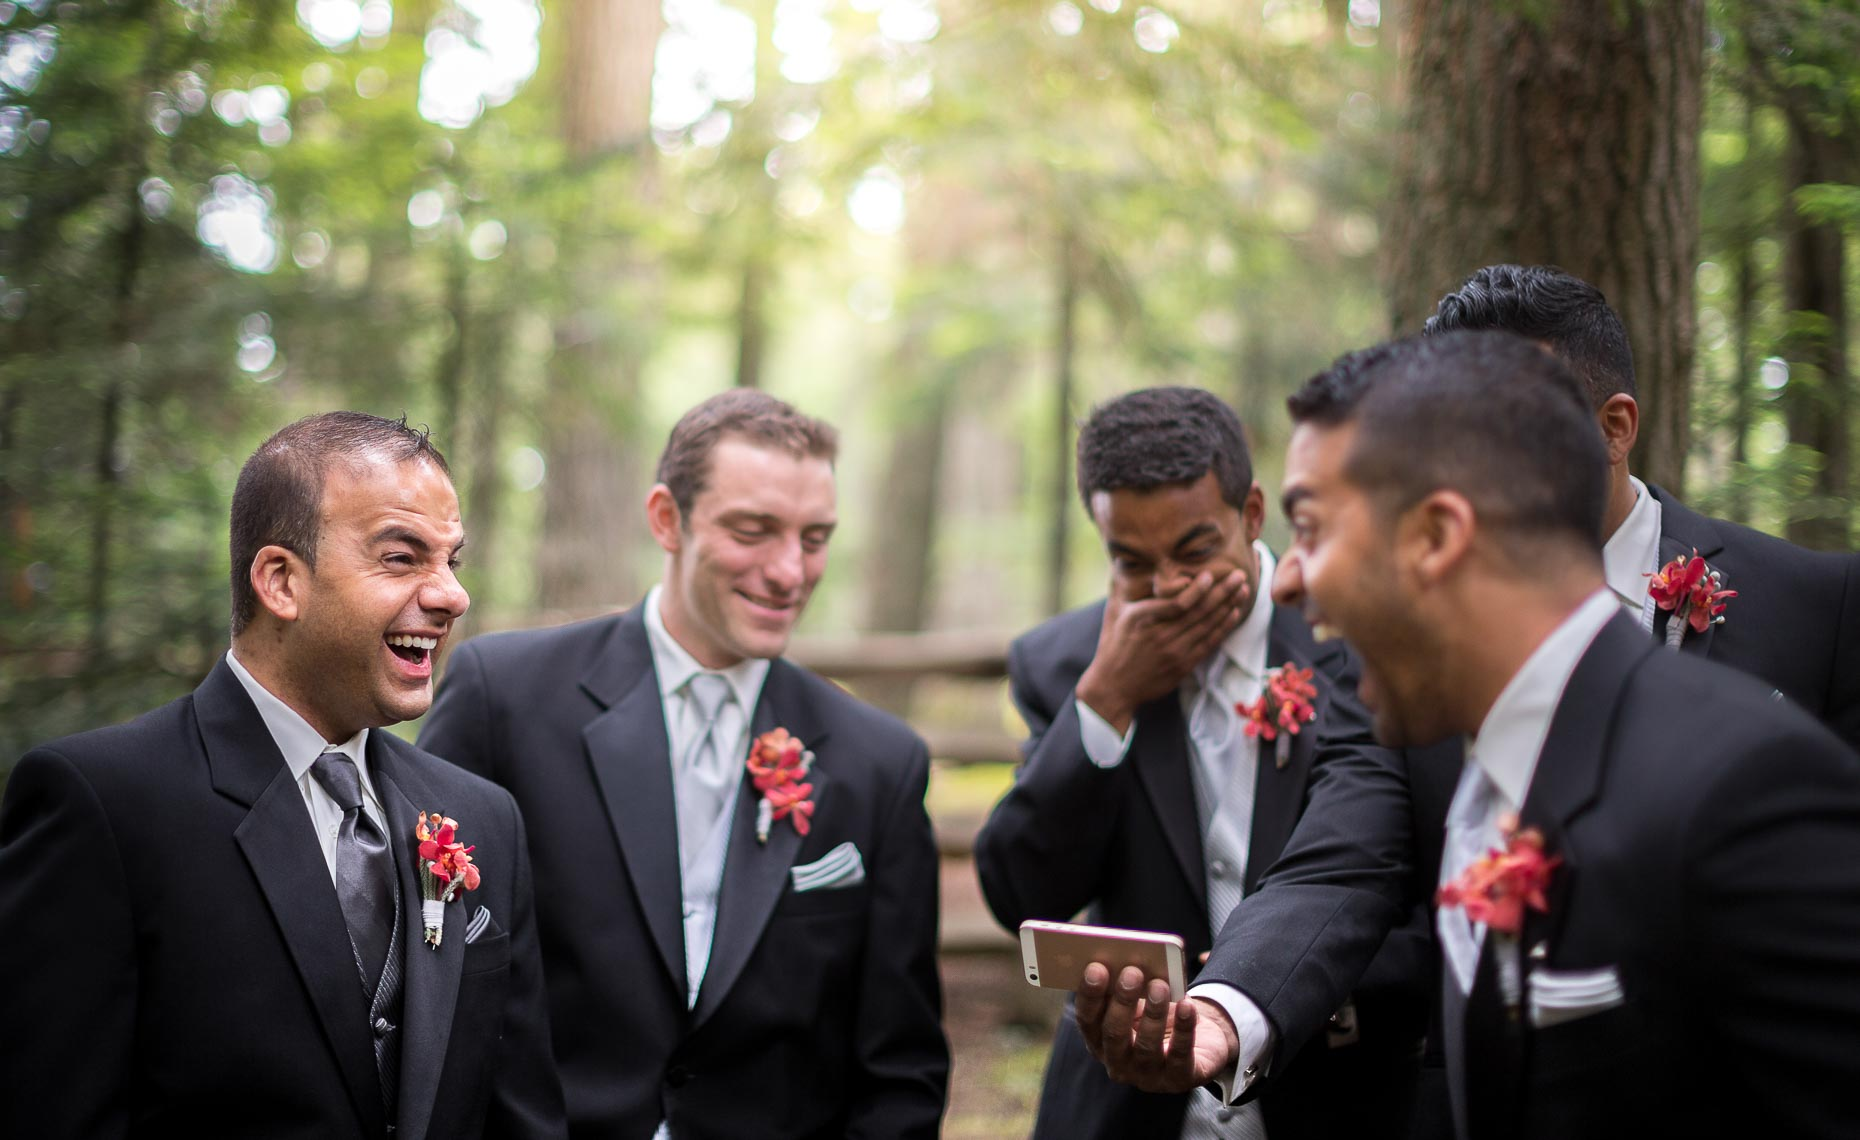 Groomsmen laughing in organic spontaneous moment of expression.